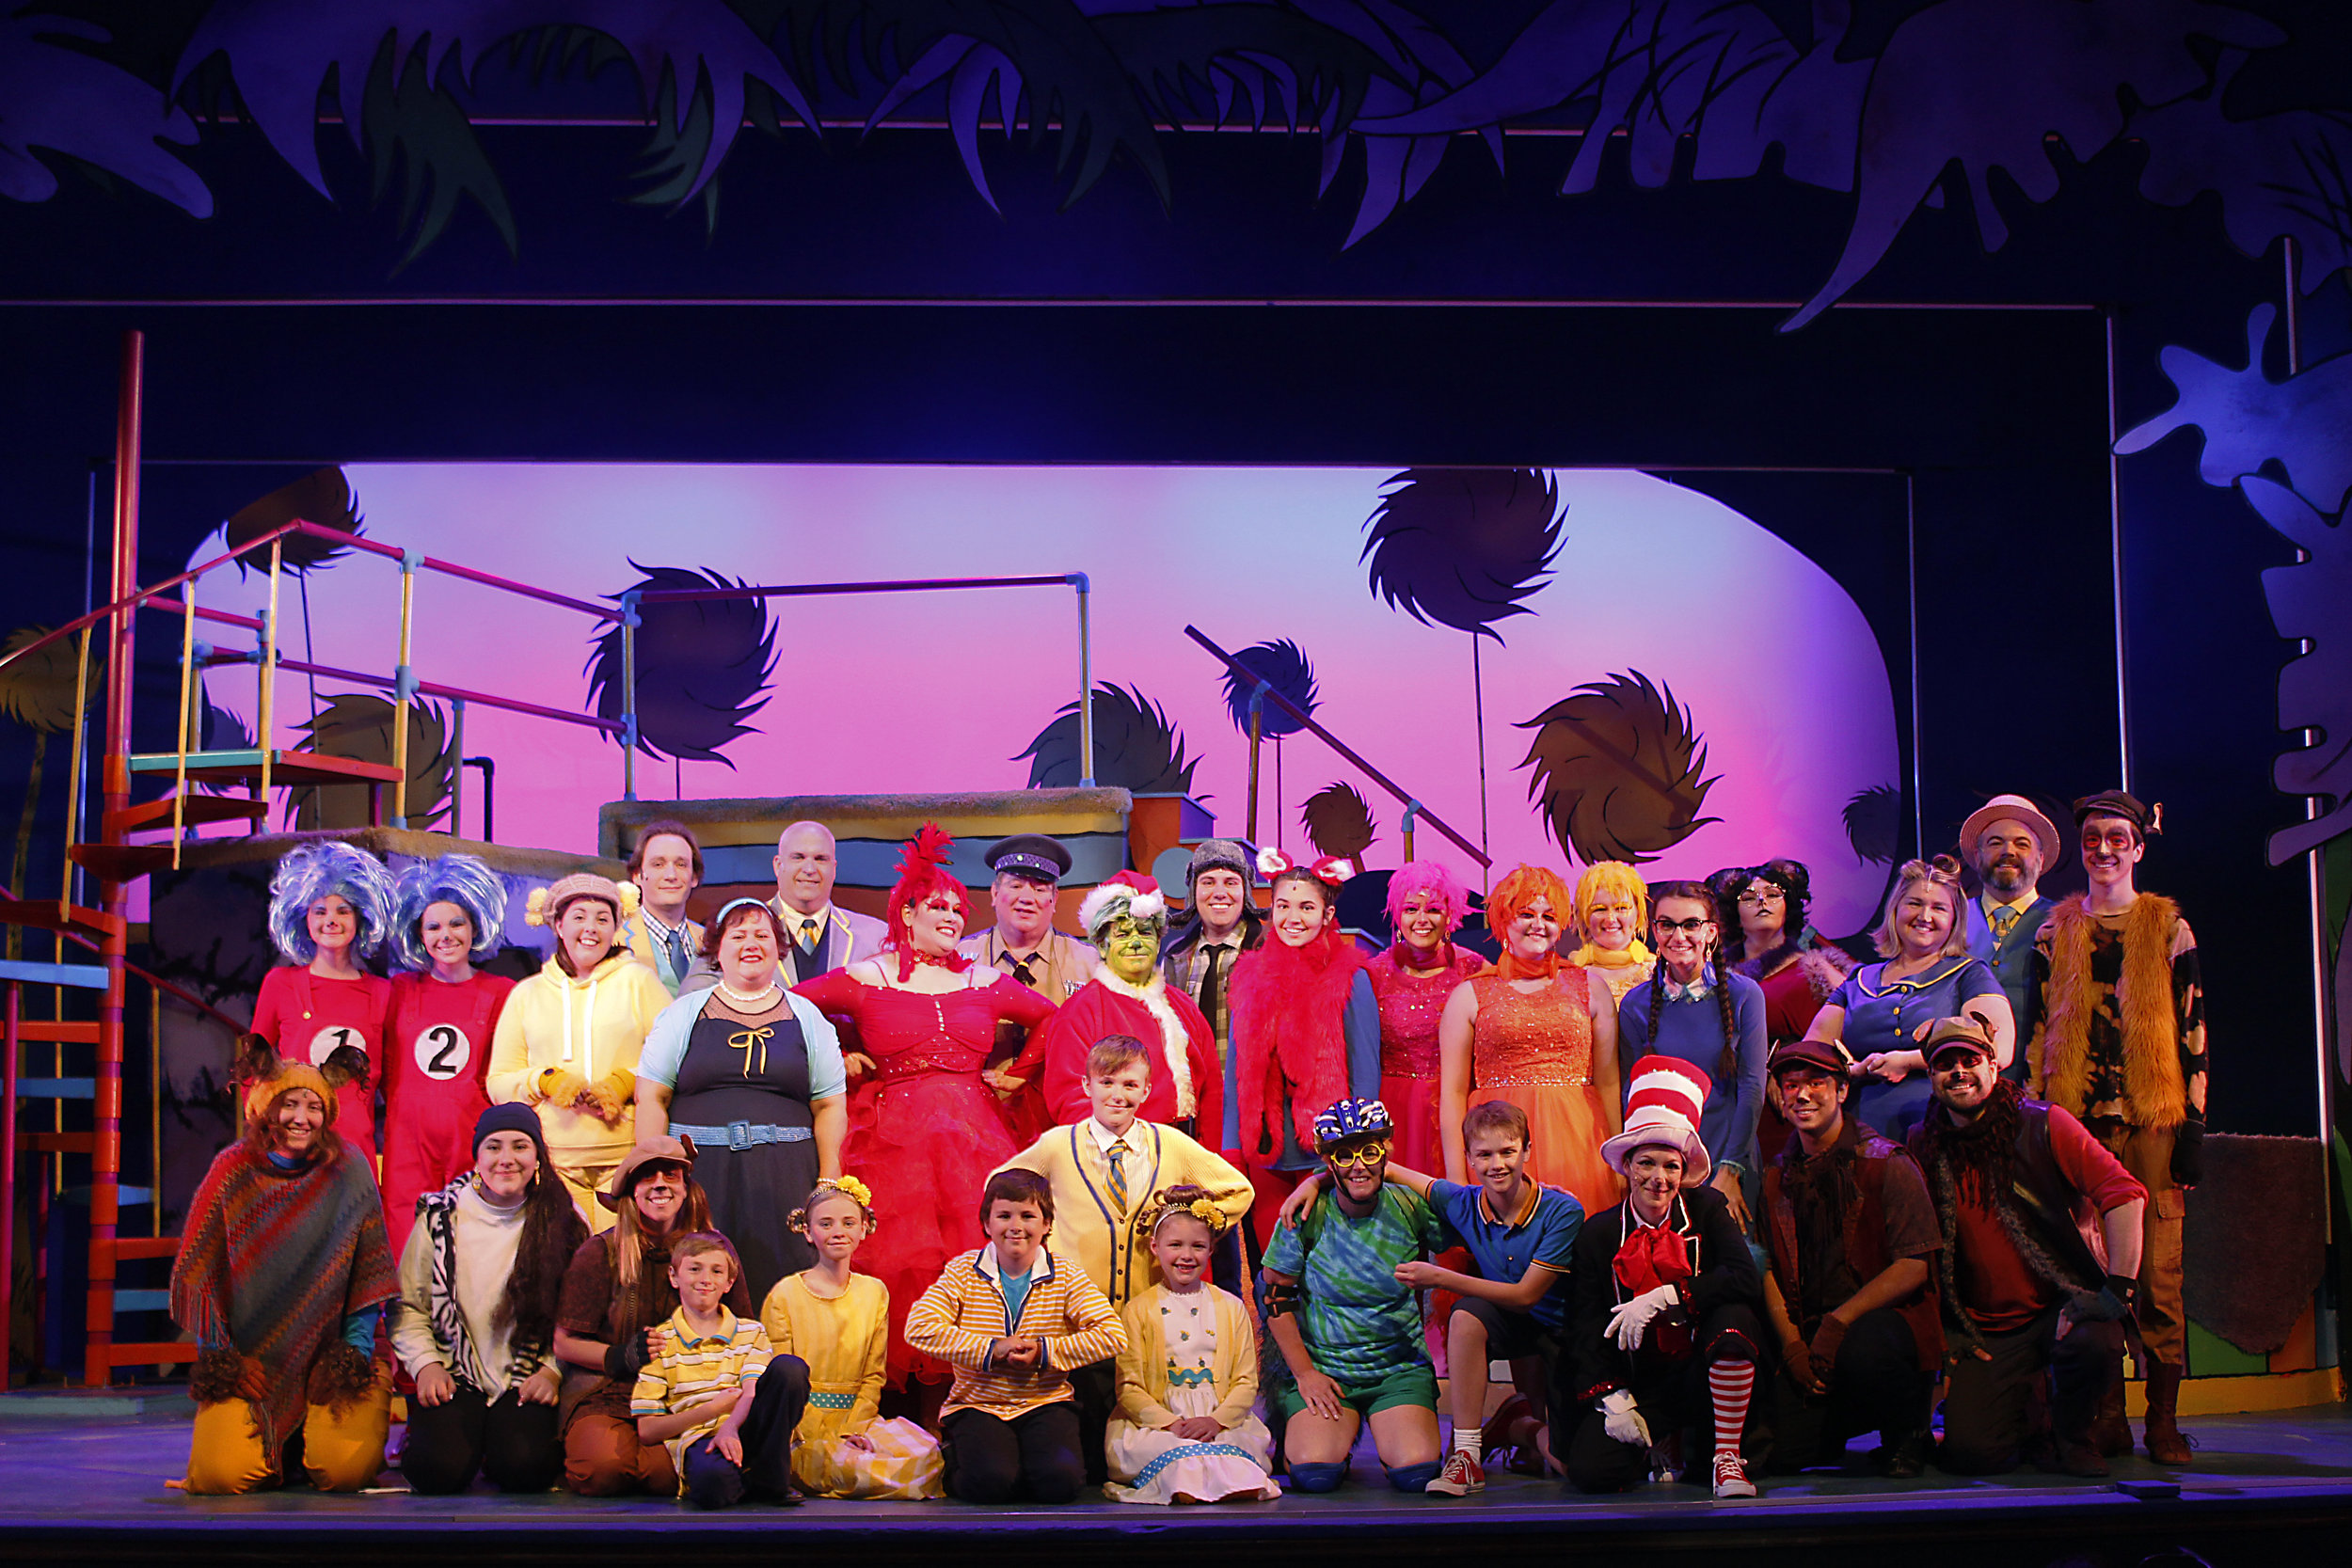 Seussical Cast Photo.jpg